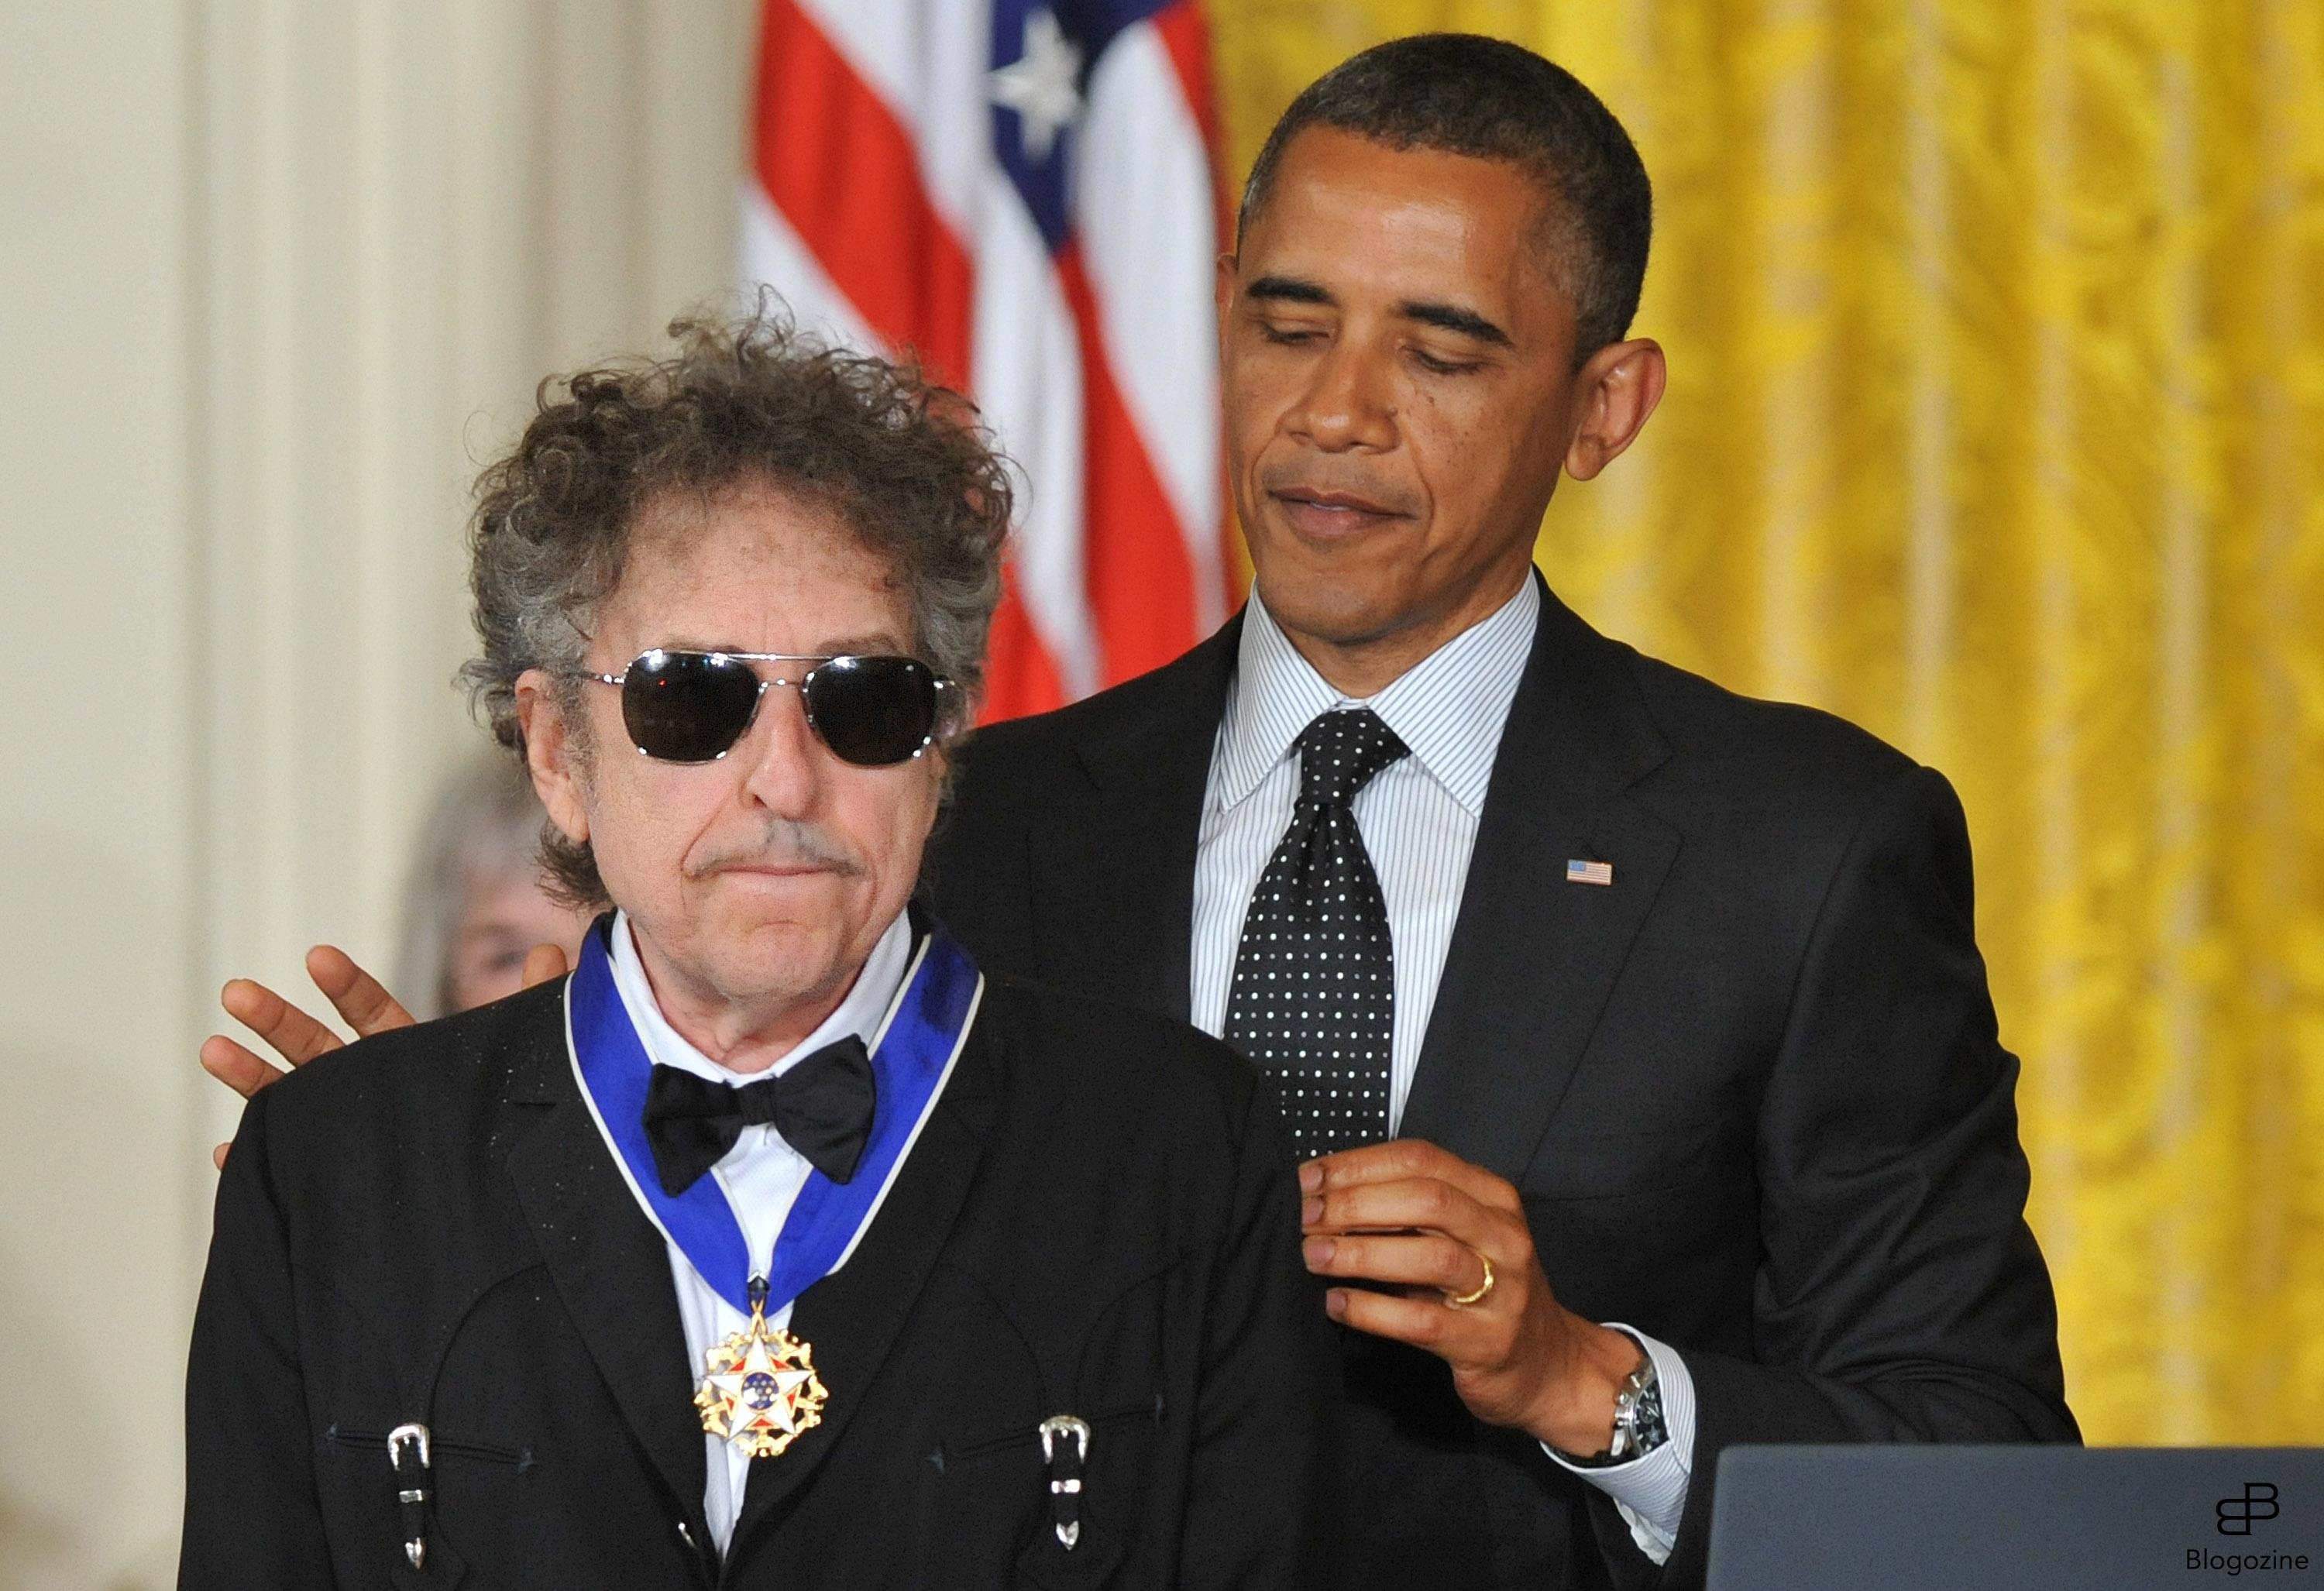 1568549 President Barack Obama awards the the Presidential Medal of Freedom to singer/songwriter Bob Dylan during a ceremony in the East Room at the White House in Washington on May 29, 2012. The Medal of Freedom is our Nation?s highest civilian honor, presented to individuals who have made especially meritorious contributions to the security or national interests of the United States, to world peace, or to cultural or other significant public or private endeavors. UPI/Kevin Dietsch Photo: KEIVN DIETSCH/UPI Code: 4056/WAP20120529303 COPYRIGHT STELLA PICTURES Photo: KEIVN DIETSCH/UPI Code: 4056/WAP20120529303 COPYRIGHT STELLA PICTURES